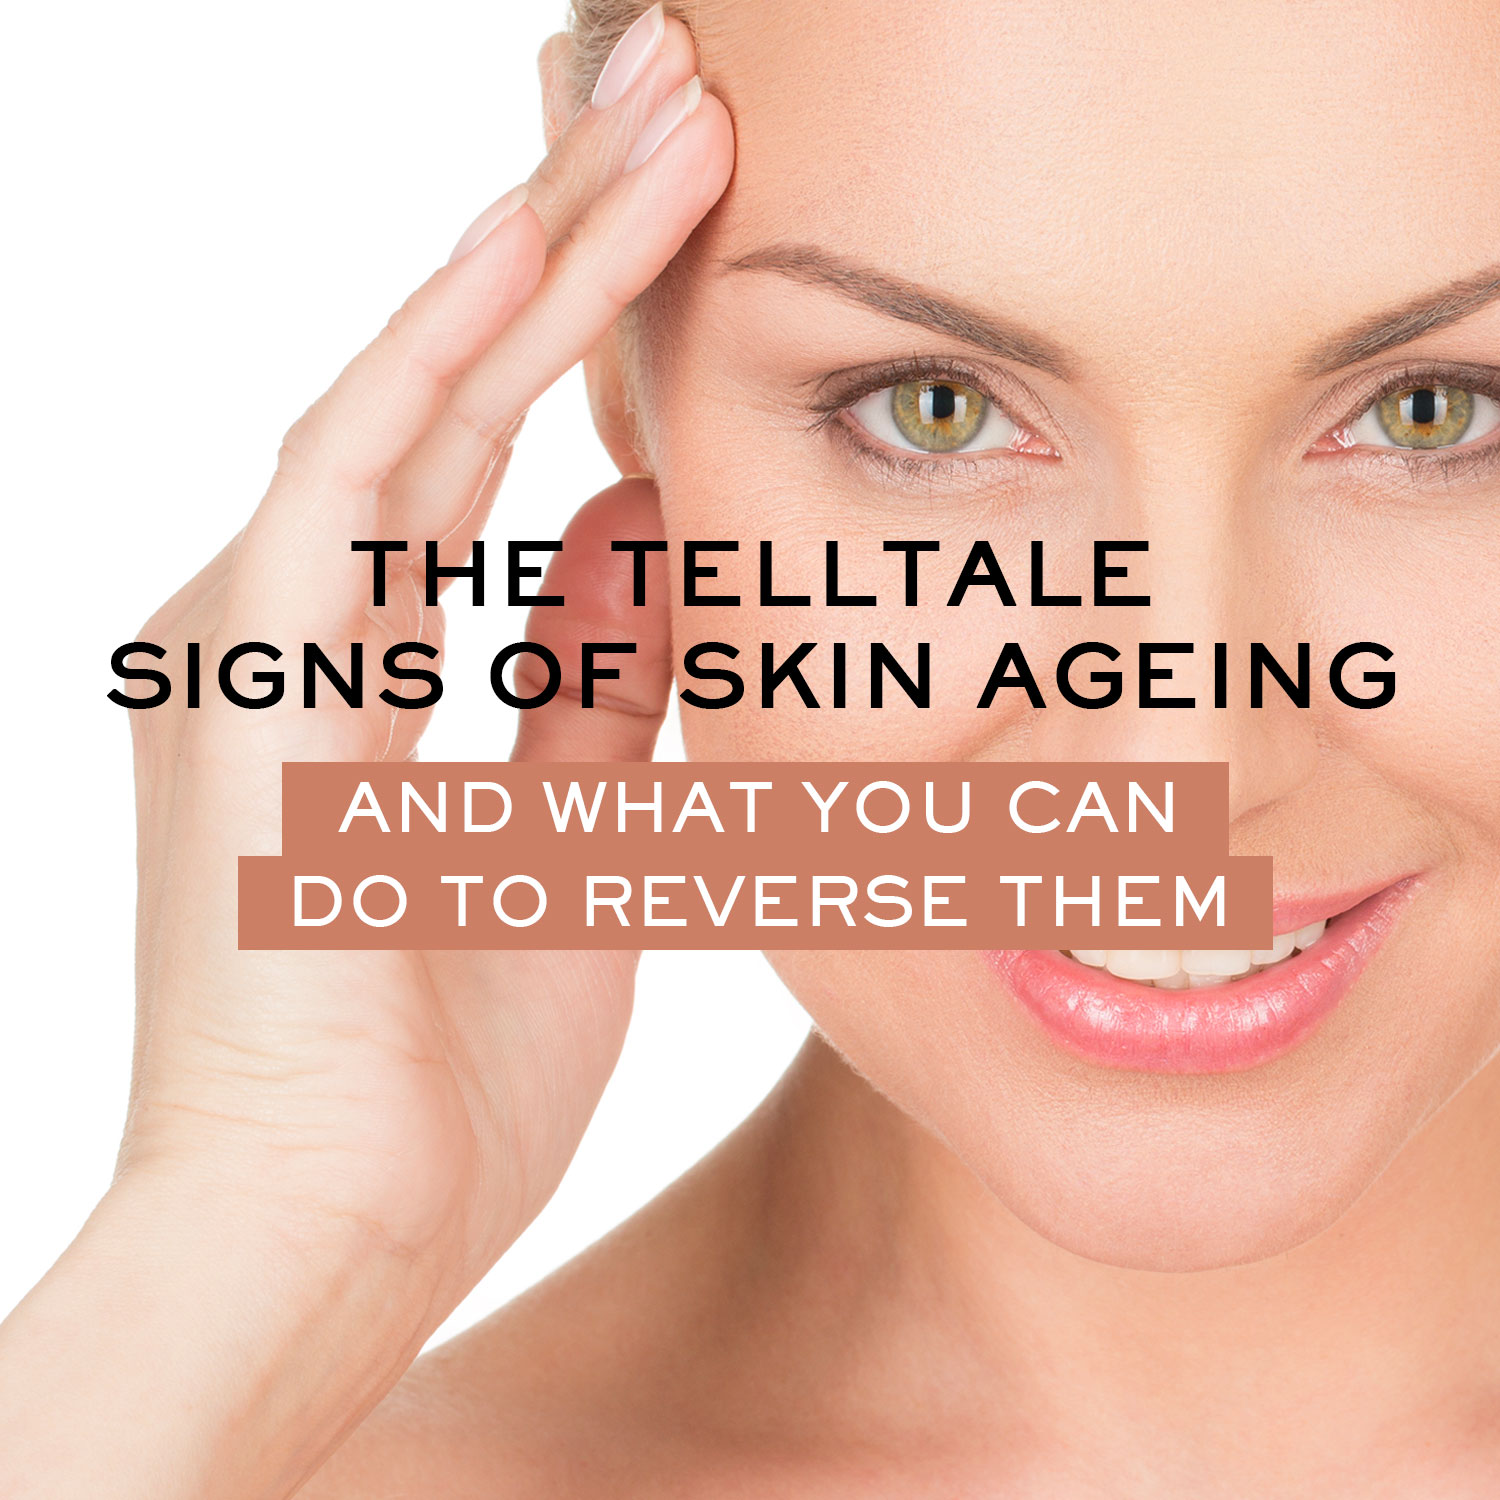 The Telltale Signs of Skin Ageing and What You Can do to Reverse Them